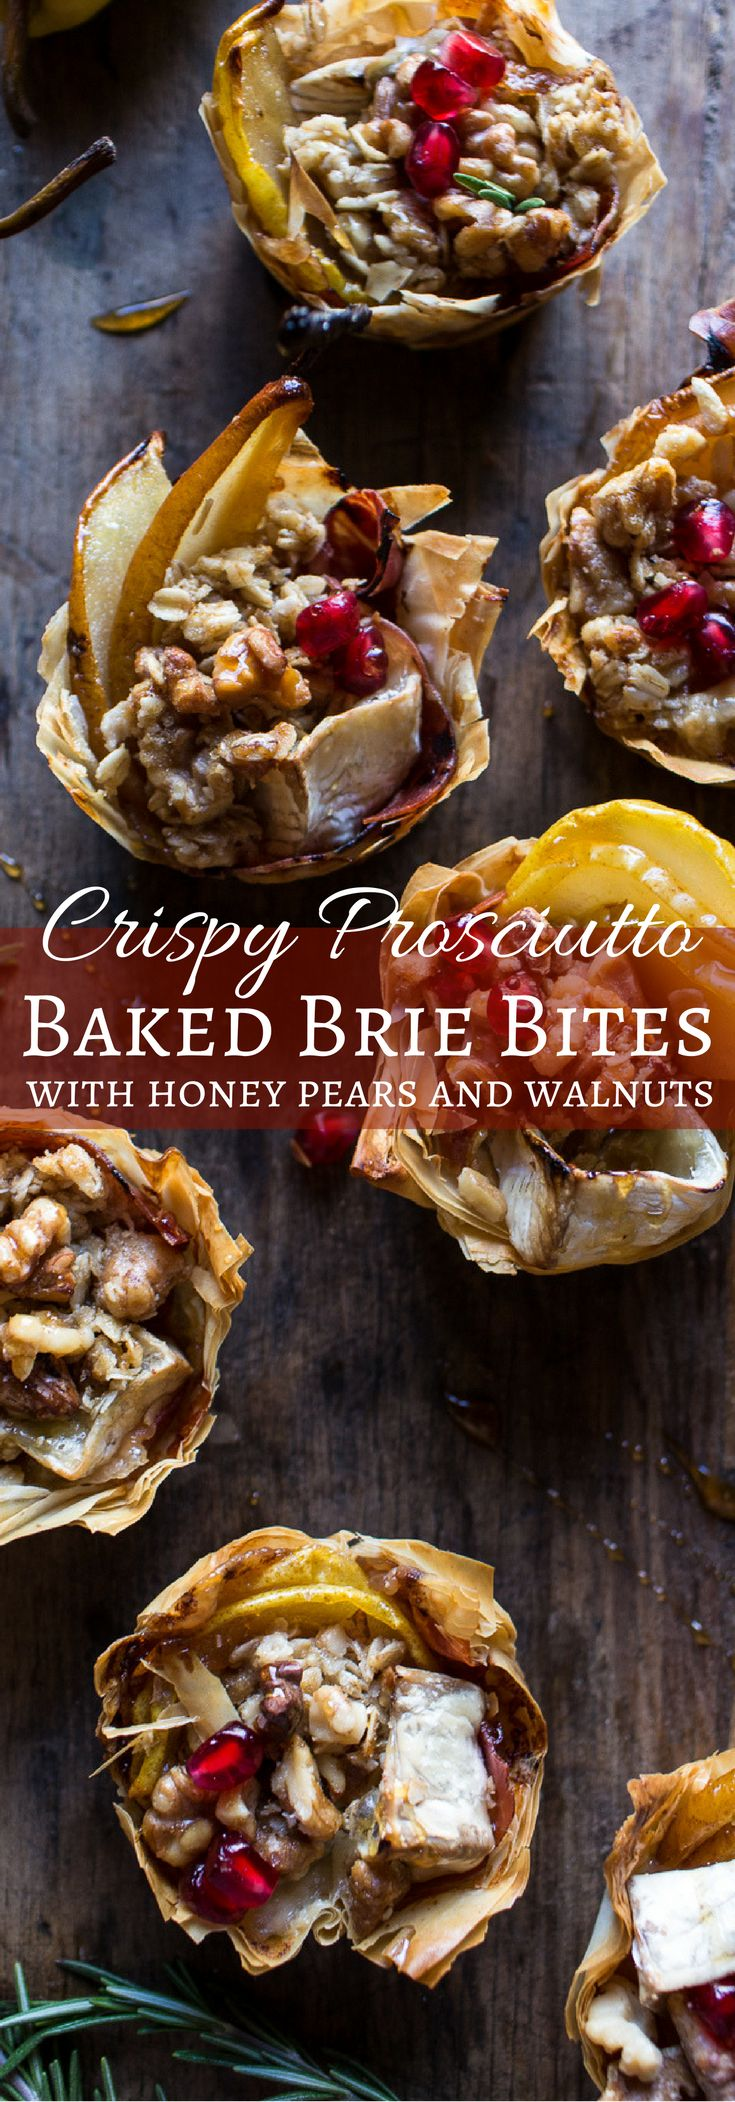 Crispy Prosciutto Baked Brie Bites with Honey Pears and Walnuts | halfbakedharvest.com @hbharvest